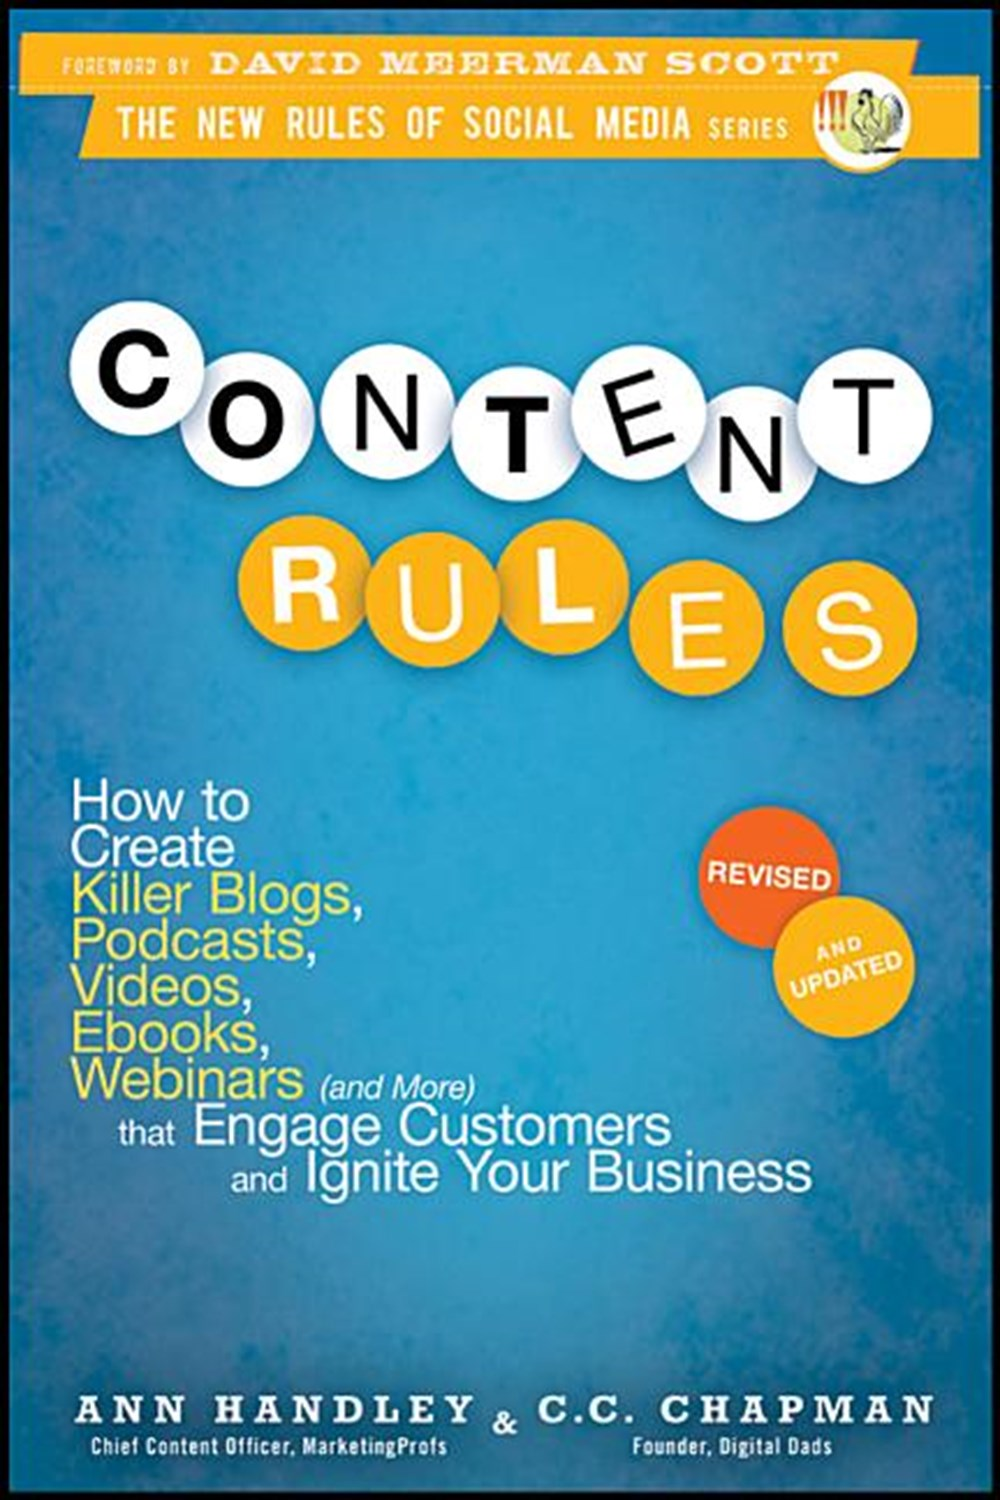 Content Rules How to Create Killer Blogs, Podcasts, Videos, Ebooks, Webinars (and More) That Engage